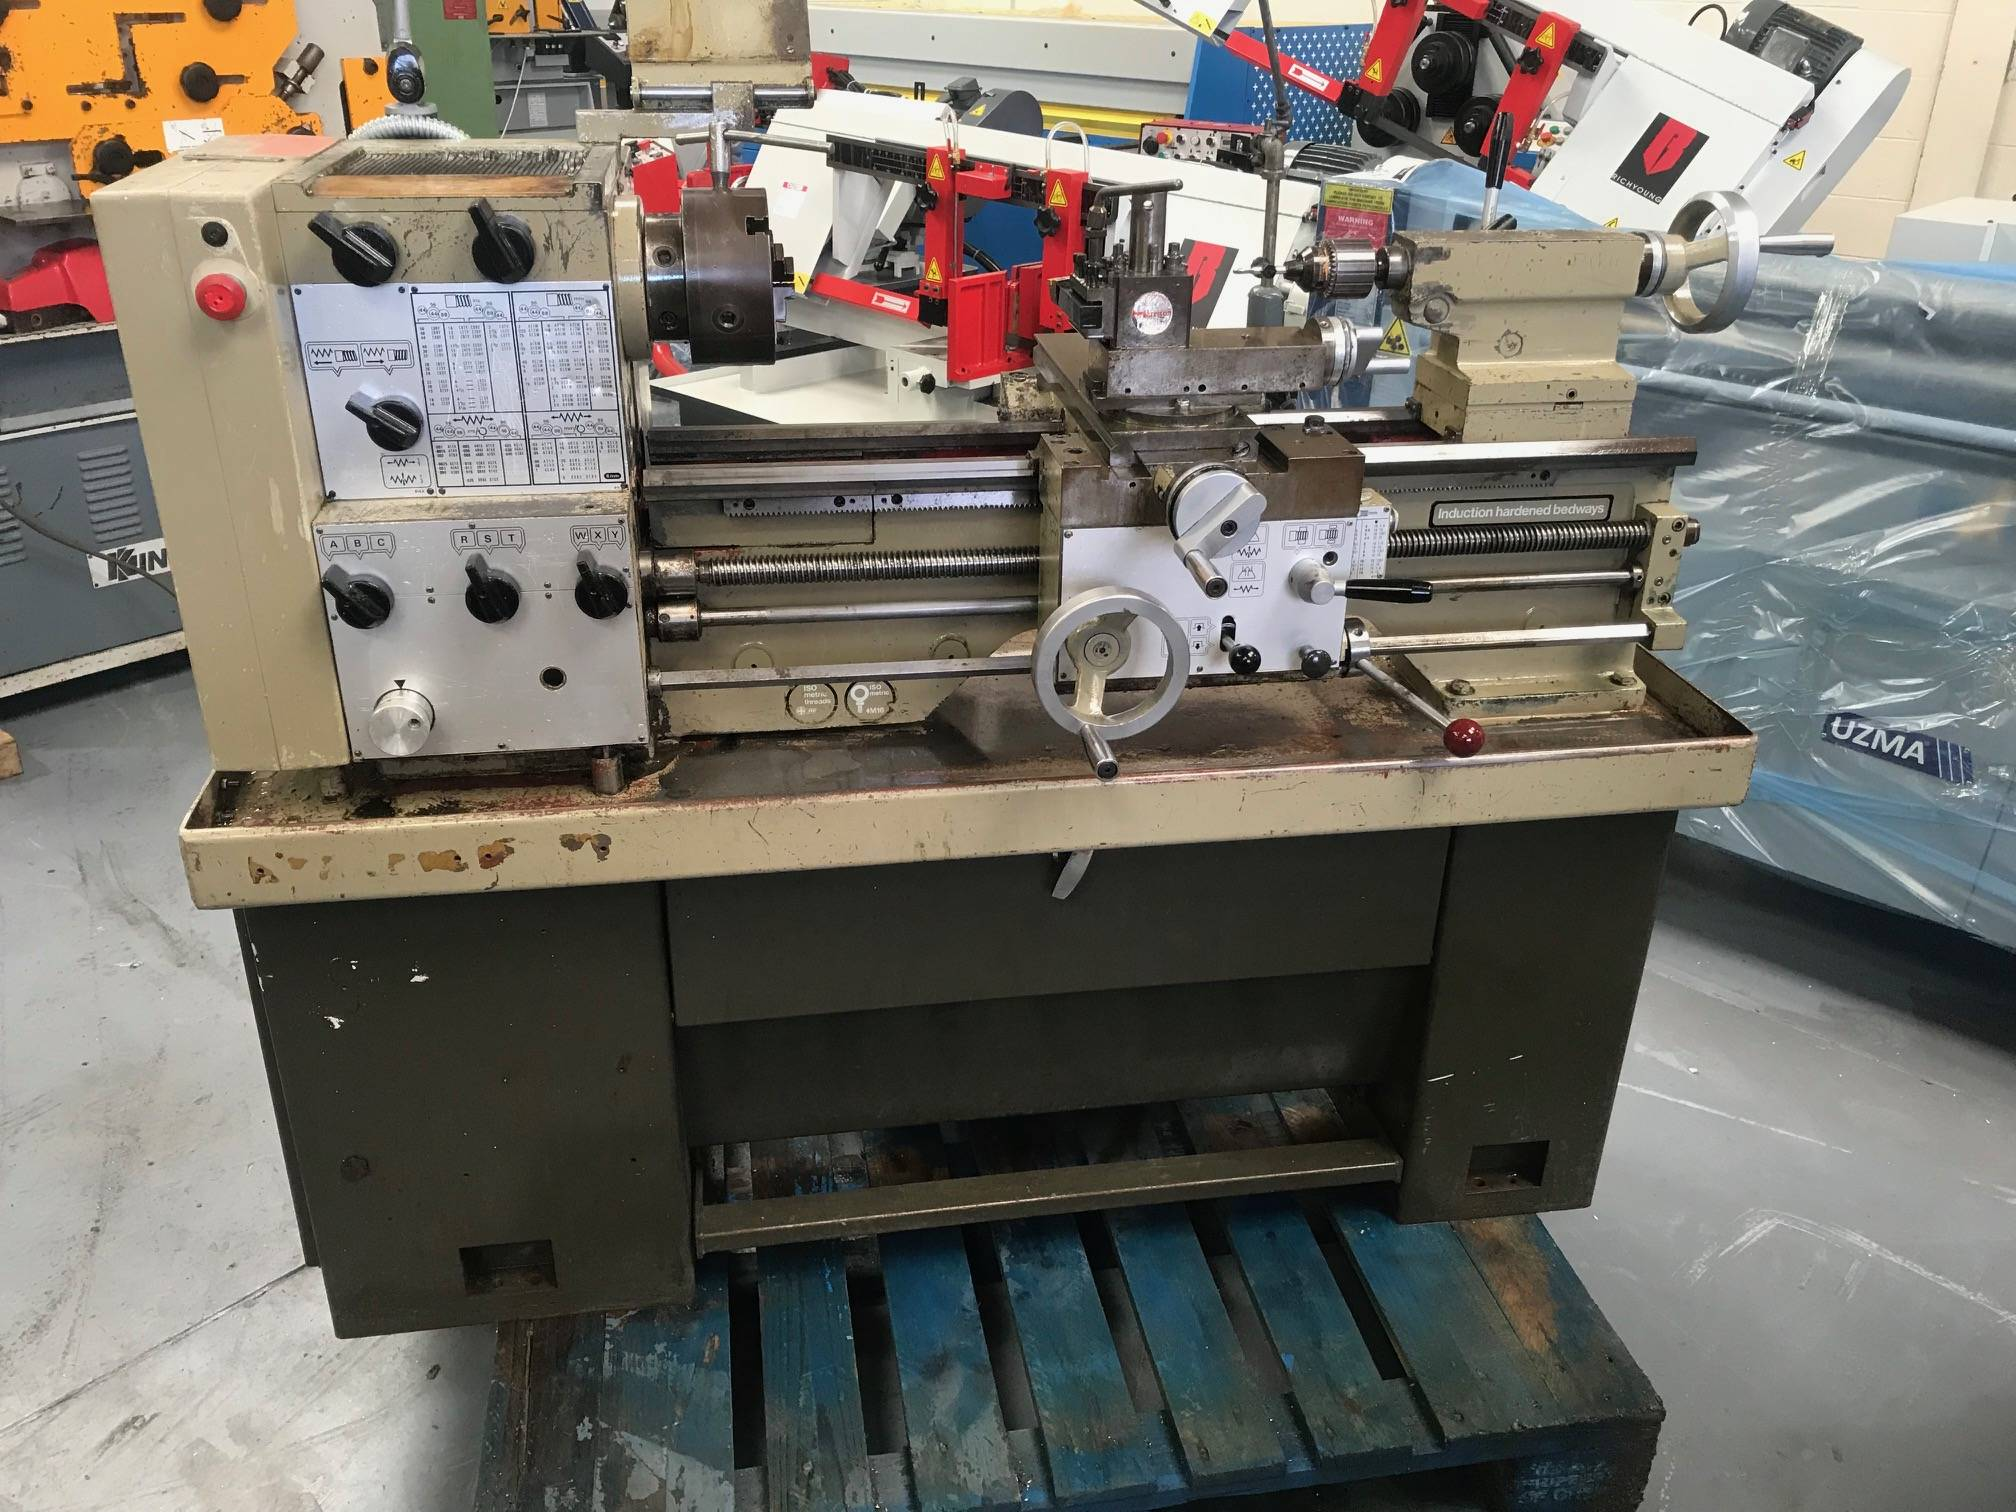 harrison m300 lathe user manual